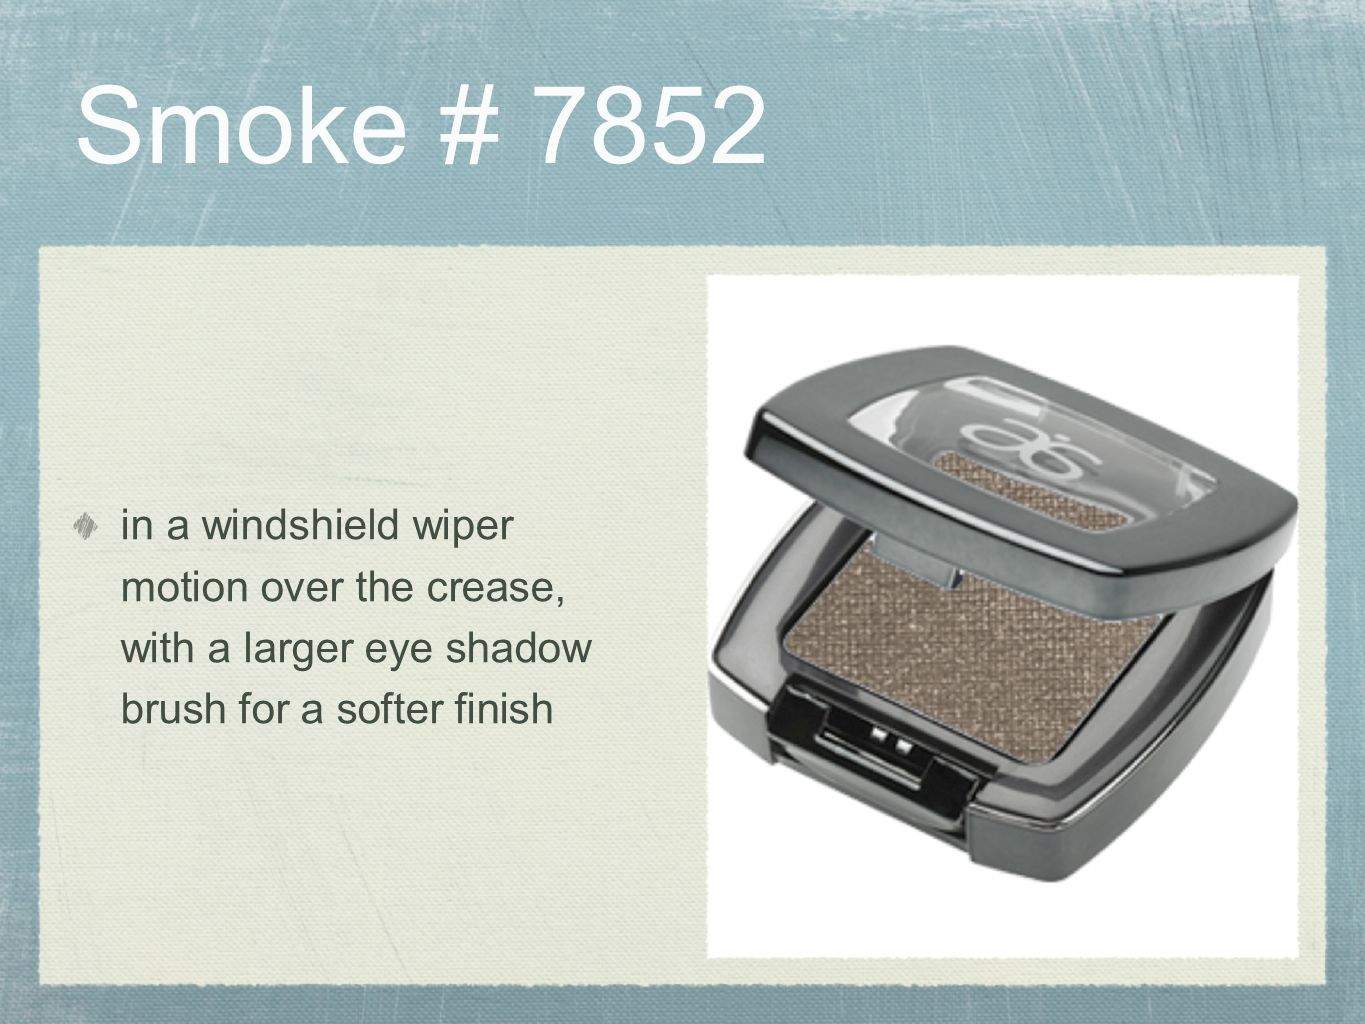 Smoke # 7852 in a windshield wiper motion over the crease, with a larger eye shadow brush for a softer finish.